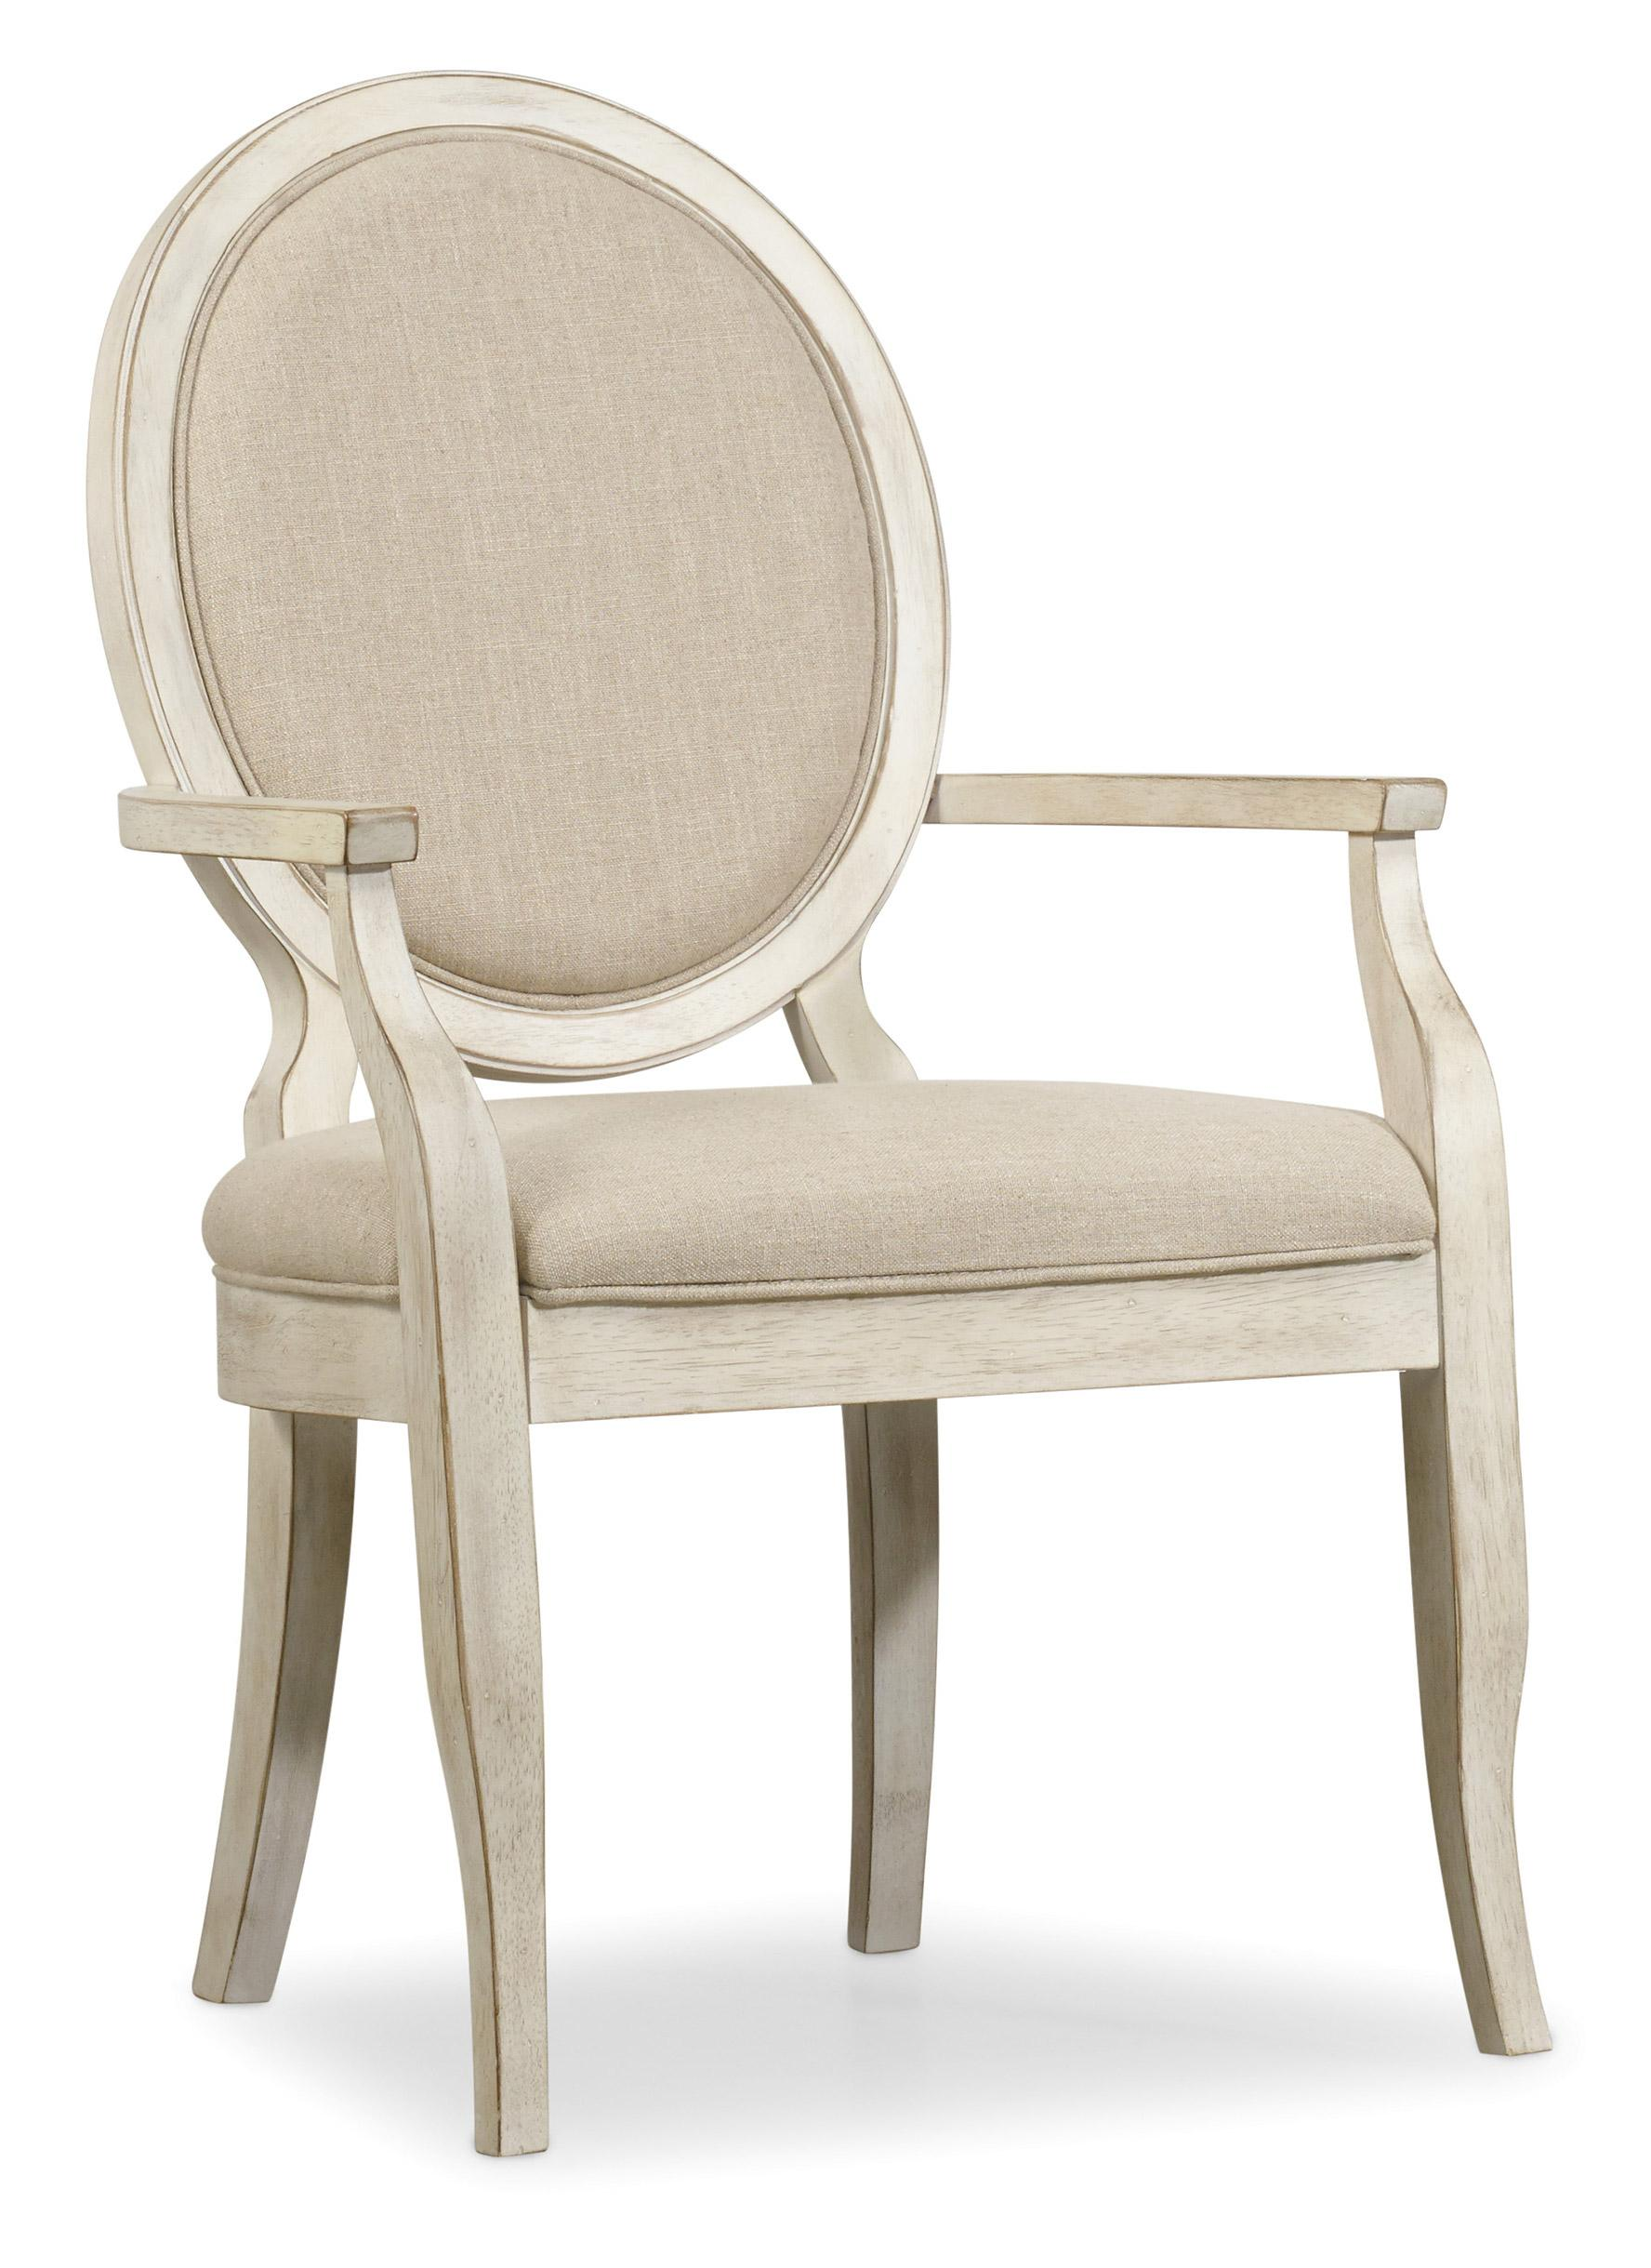 Fit Chair Sunset Point Casual Cottage Coastal Upholstered Arm Chair By Hooker Furniture At Stoney Creek Furniture